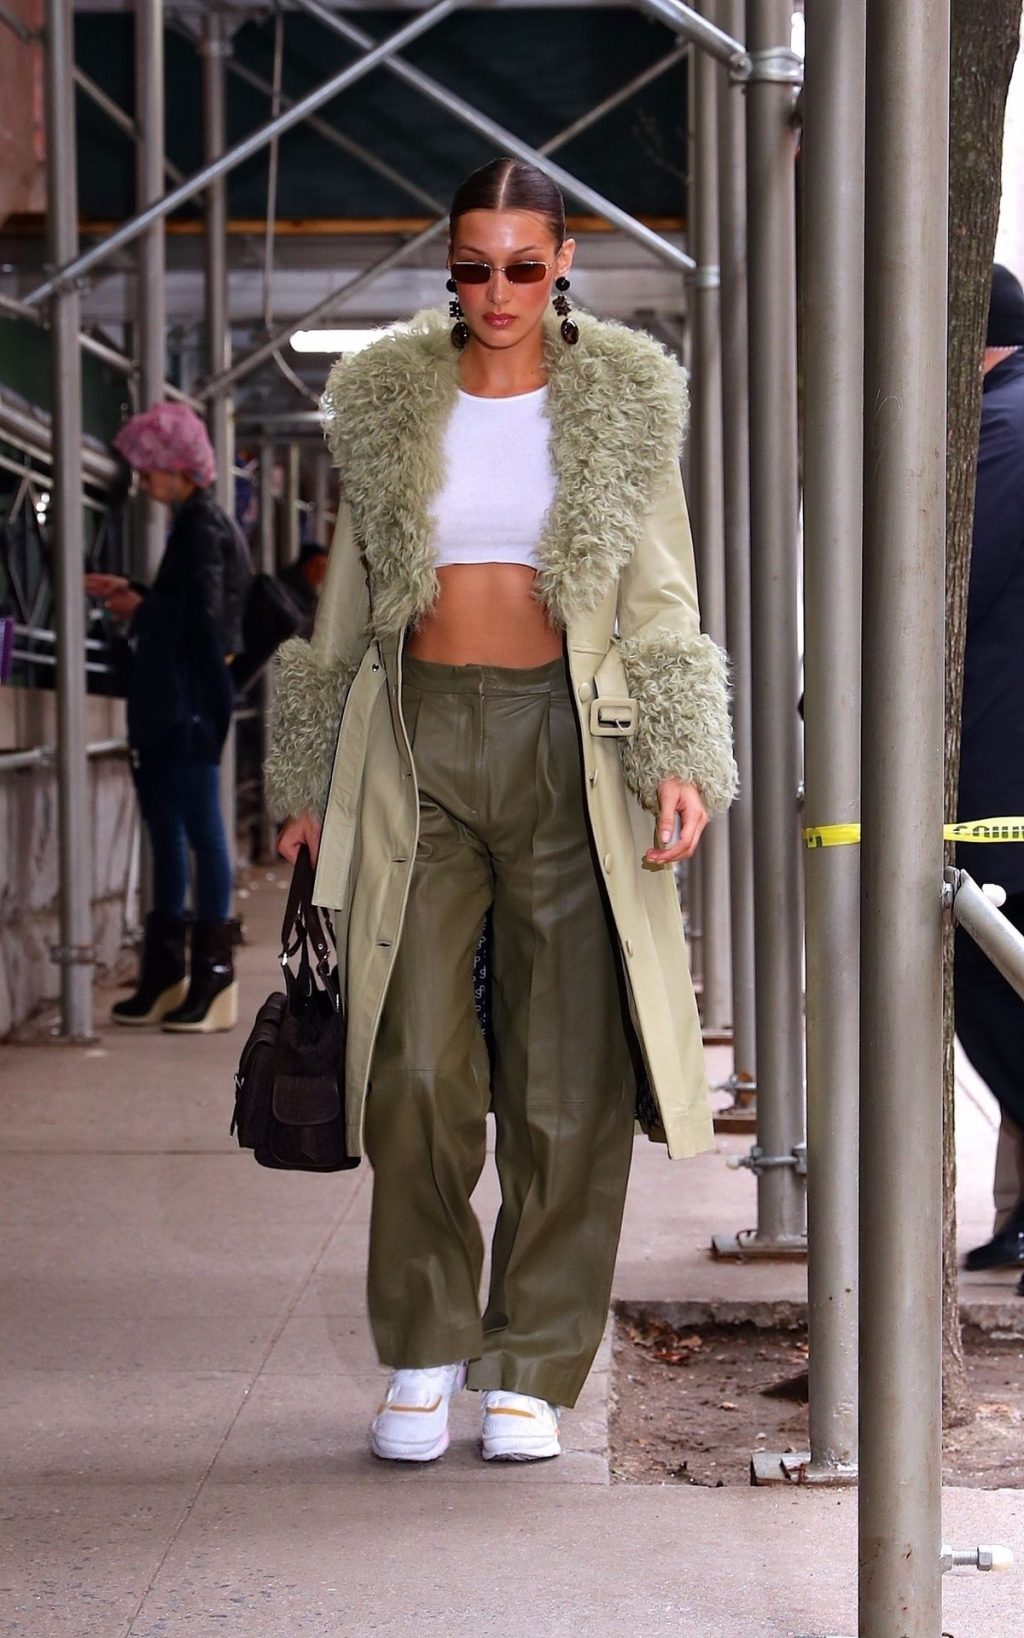 Bella Hadid See through The Fappening Blog 25 1024x1638 - Braless Bella Hadid Arrives at the Park Avenue Armory for the Marc Jacobs Fashion Show (59 Photos)